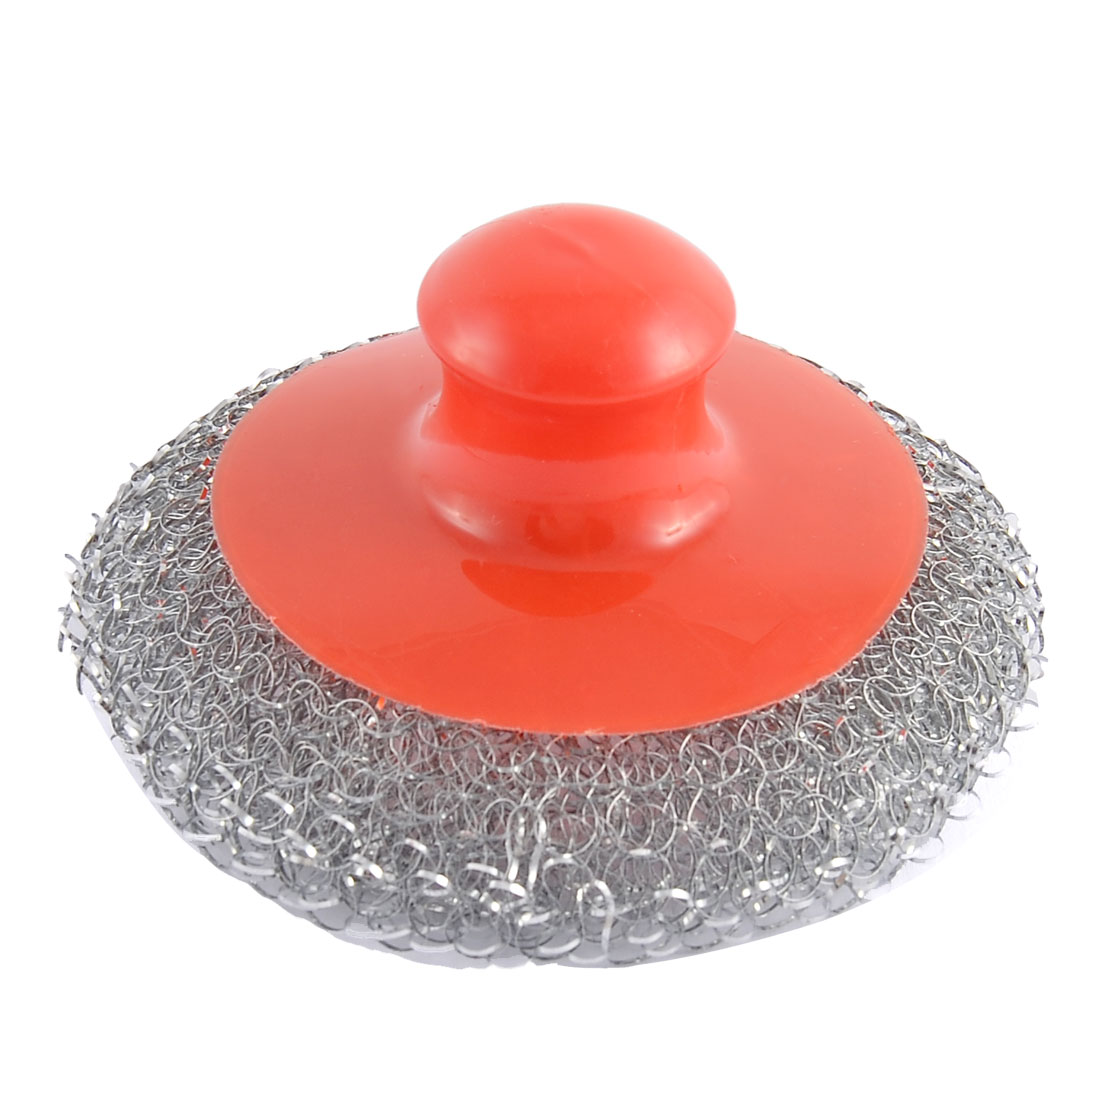 Kitchenware Plastic Handheld Metal Wire Ball Pot Scrubber Cleaning Brush Red